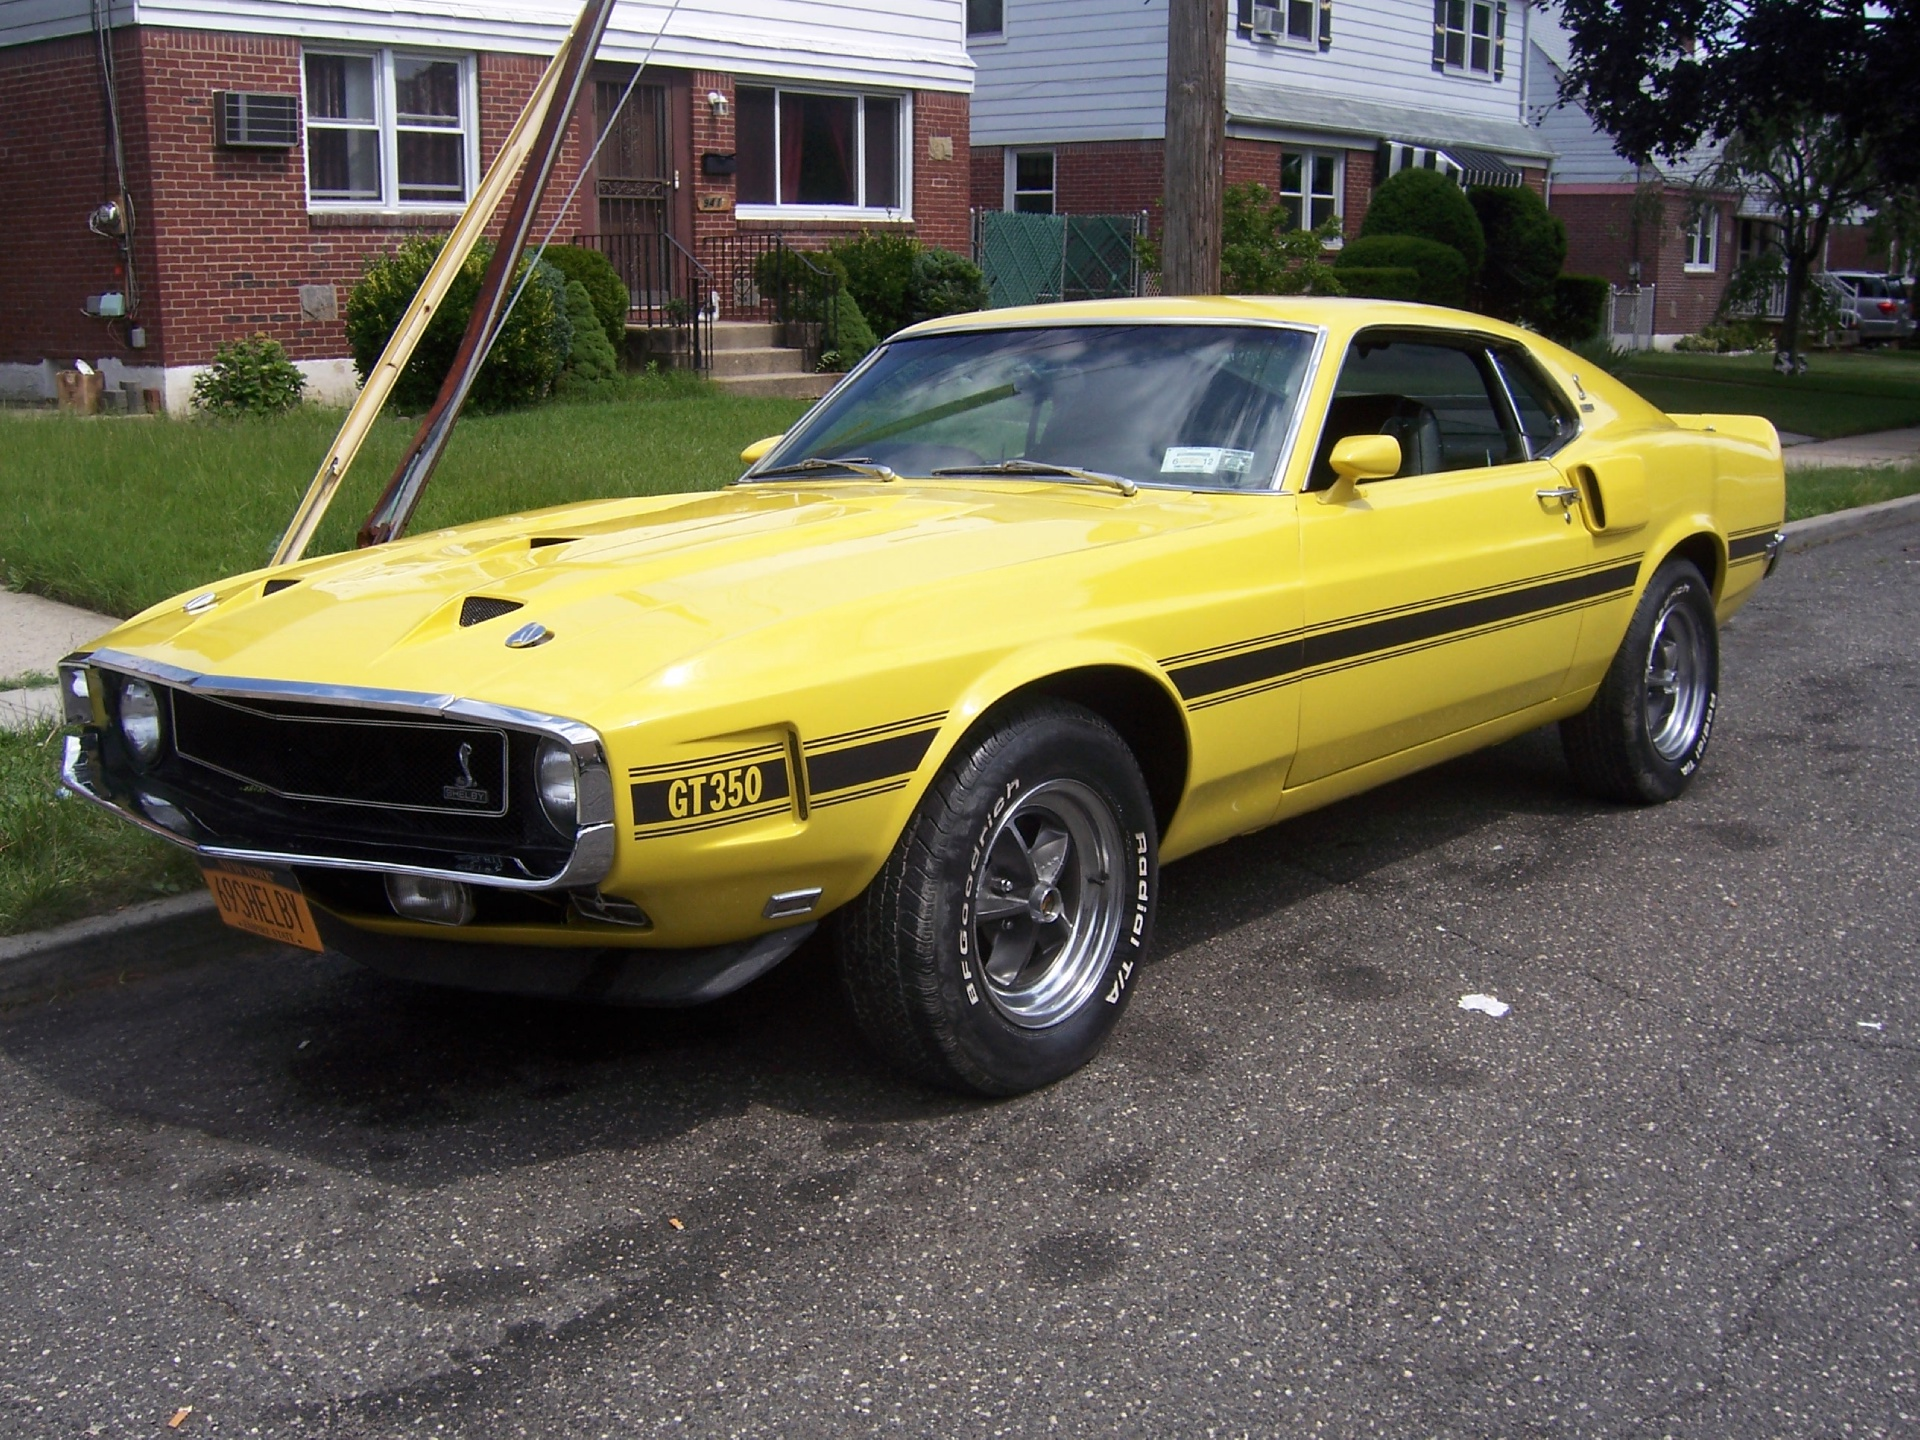 1969 ford mustang stock 1969mustangshelby for sale near. Black Bedroom Furniture Sets. Home Design Ideas